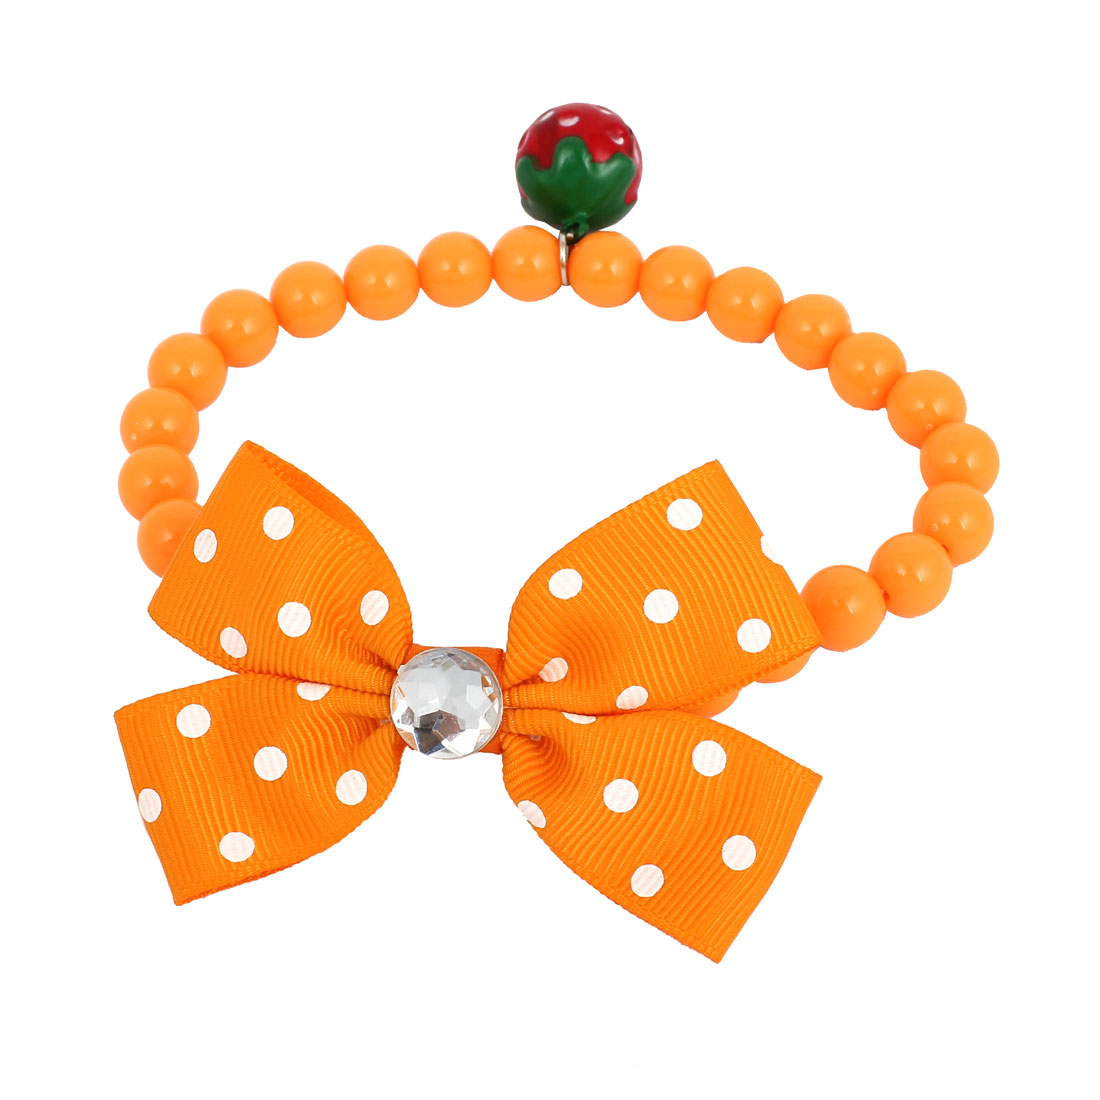 Metal Bell Pendant Bowtie Accent Pet Dog Plastic Round Beads Collar Necklace Orange XS